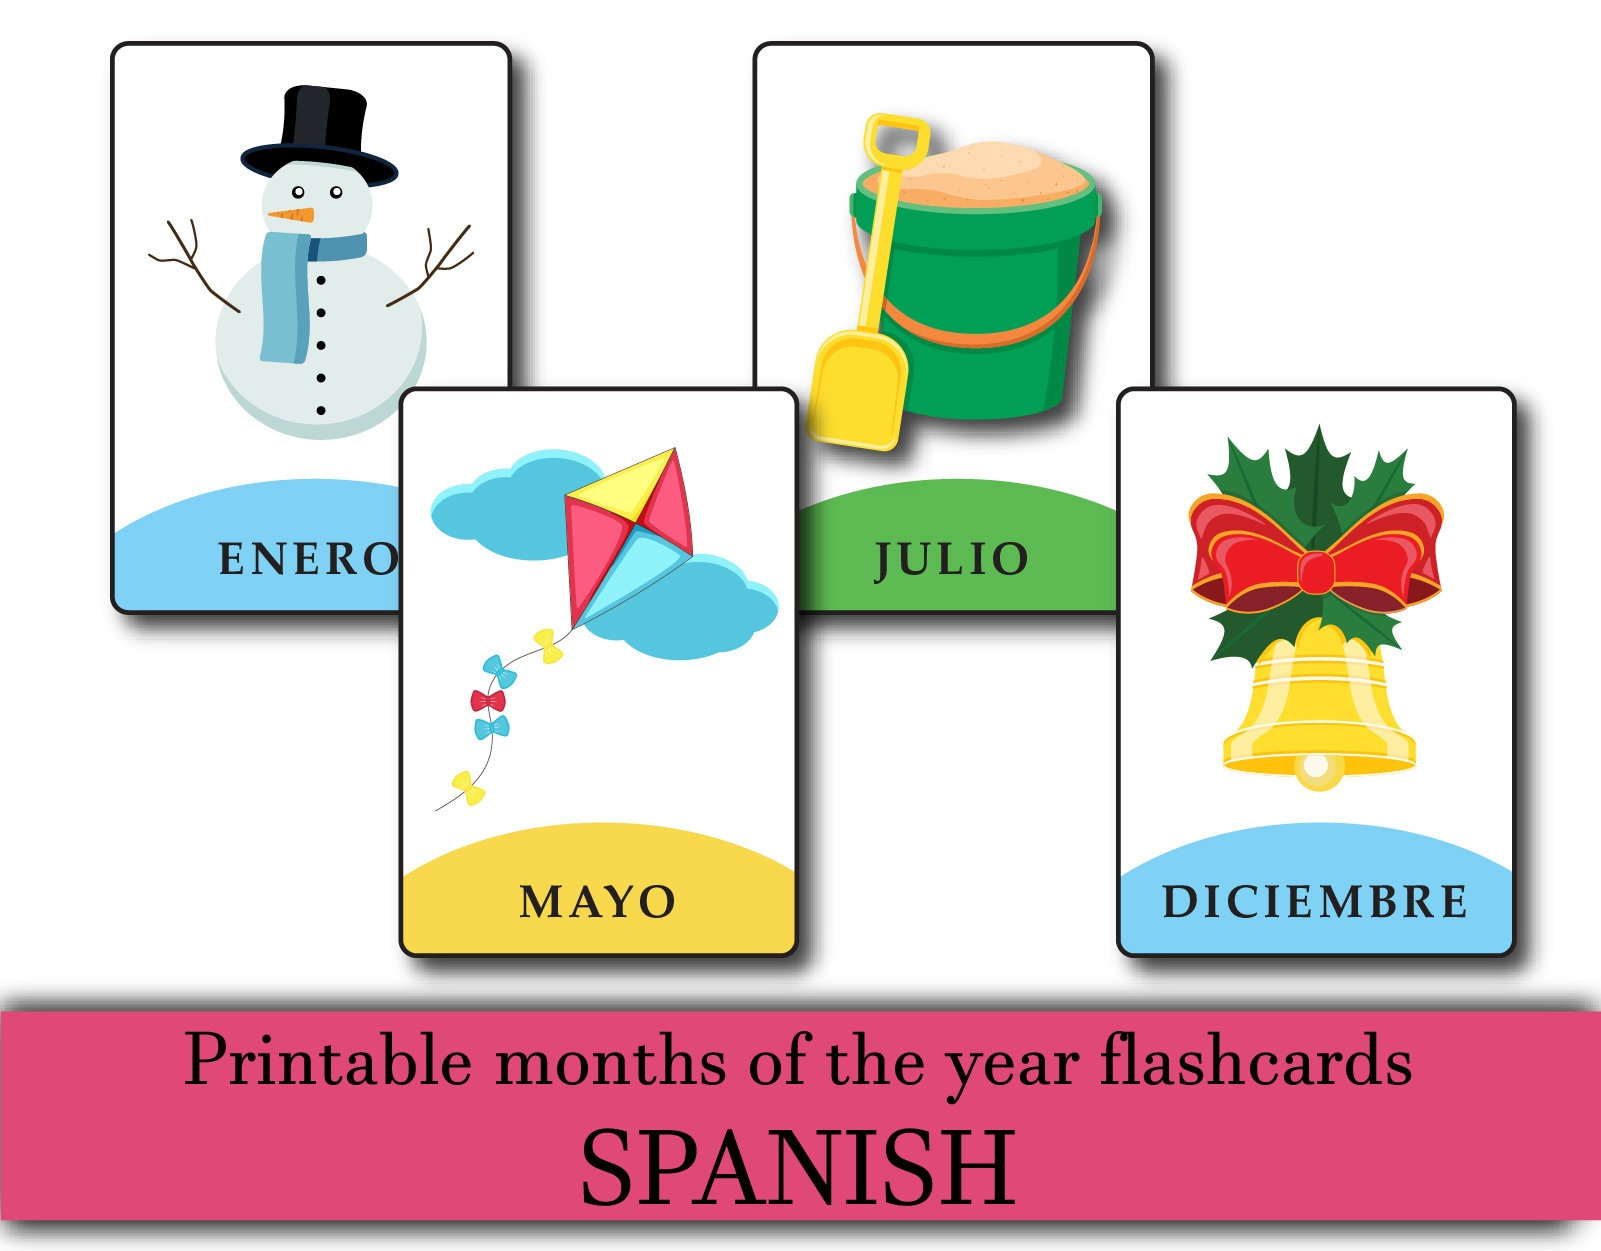 photograph regarding Printable Months of the Year named SPANISH printable weeks of the yr flashcards, SPANISH discovering playing cards, youngsters instruction playing cards, printable flashcards, weeks in just SPANISH